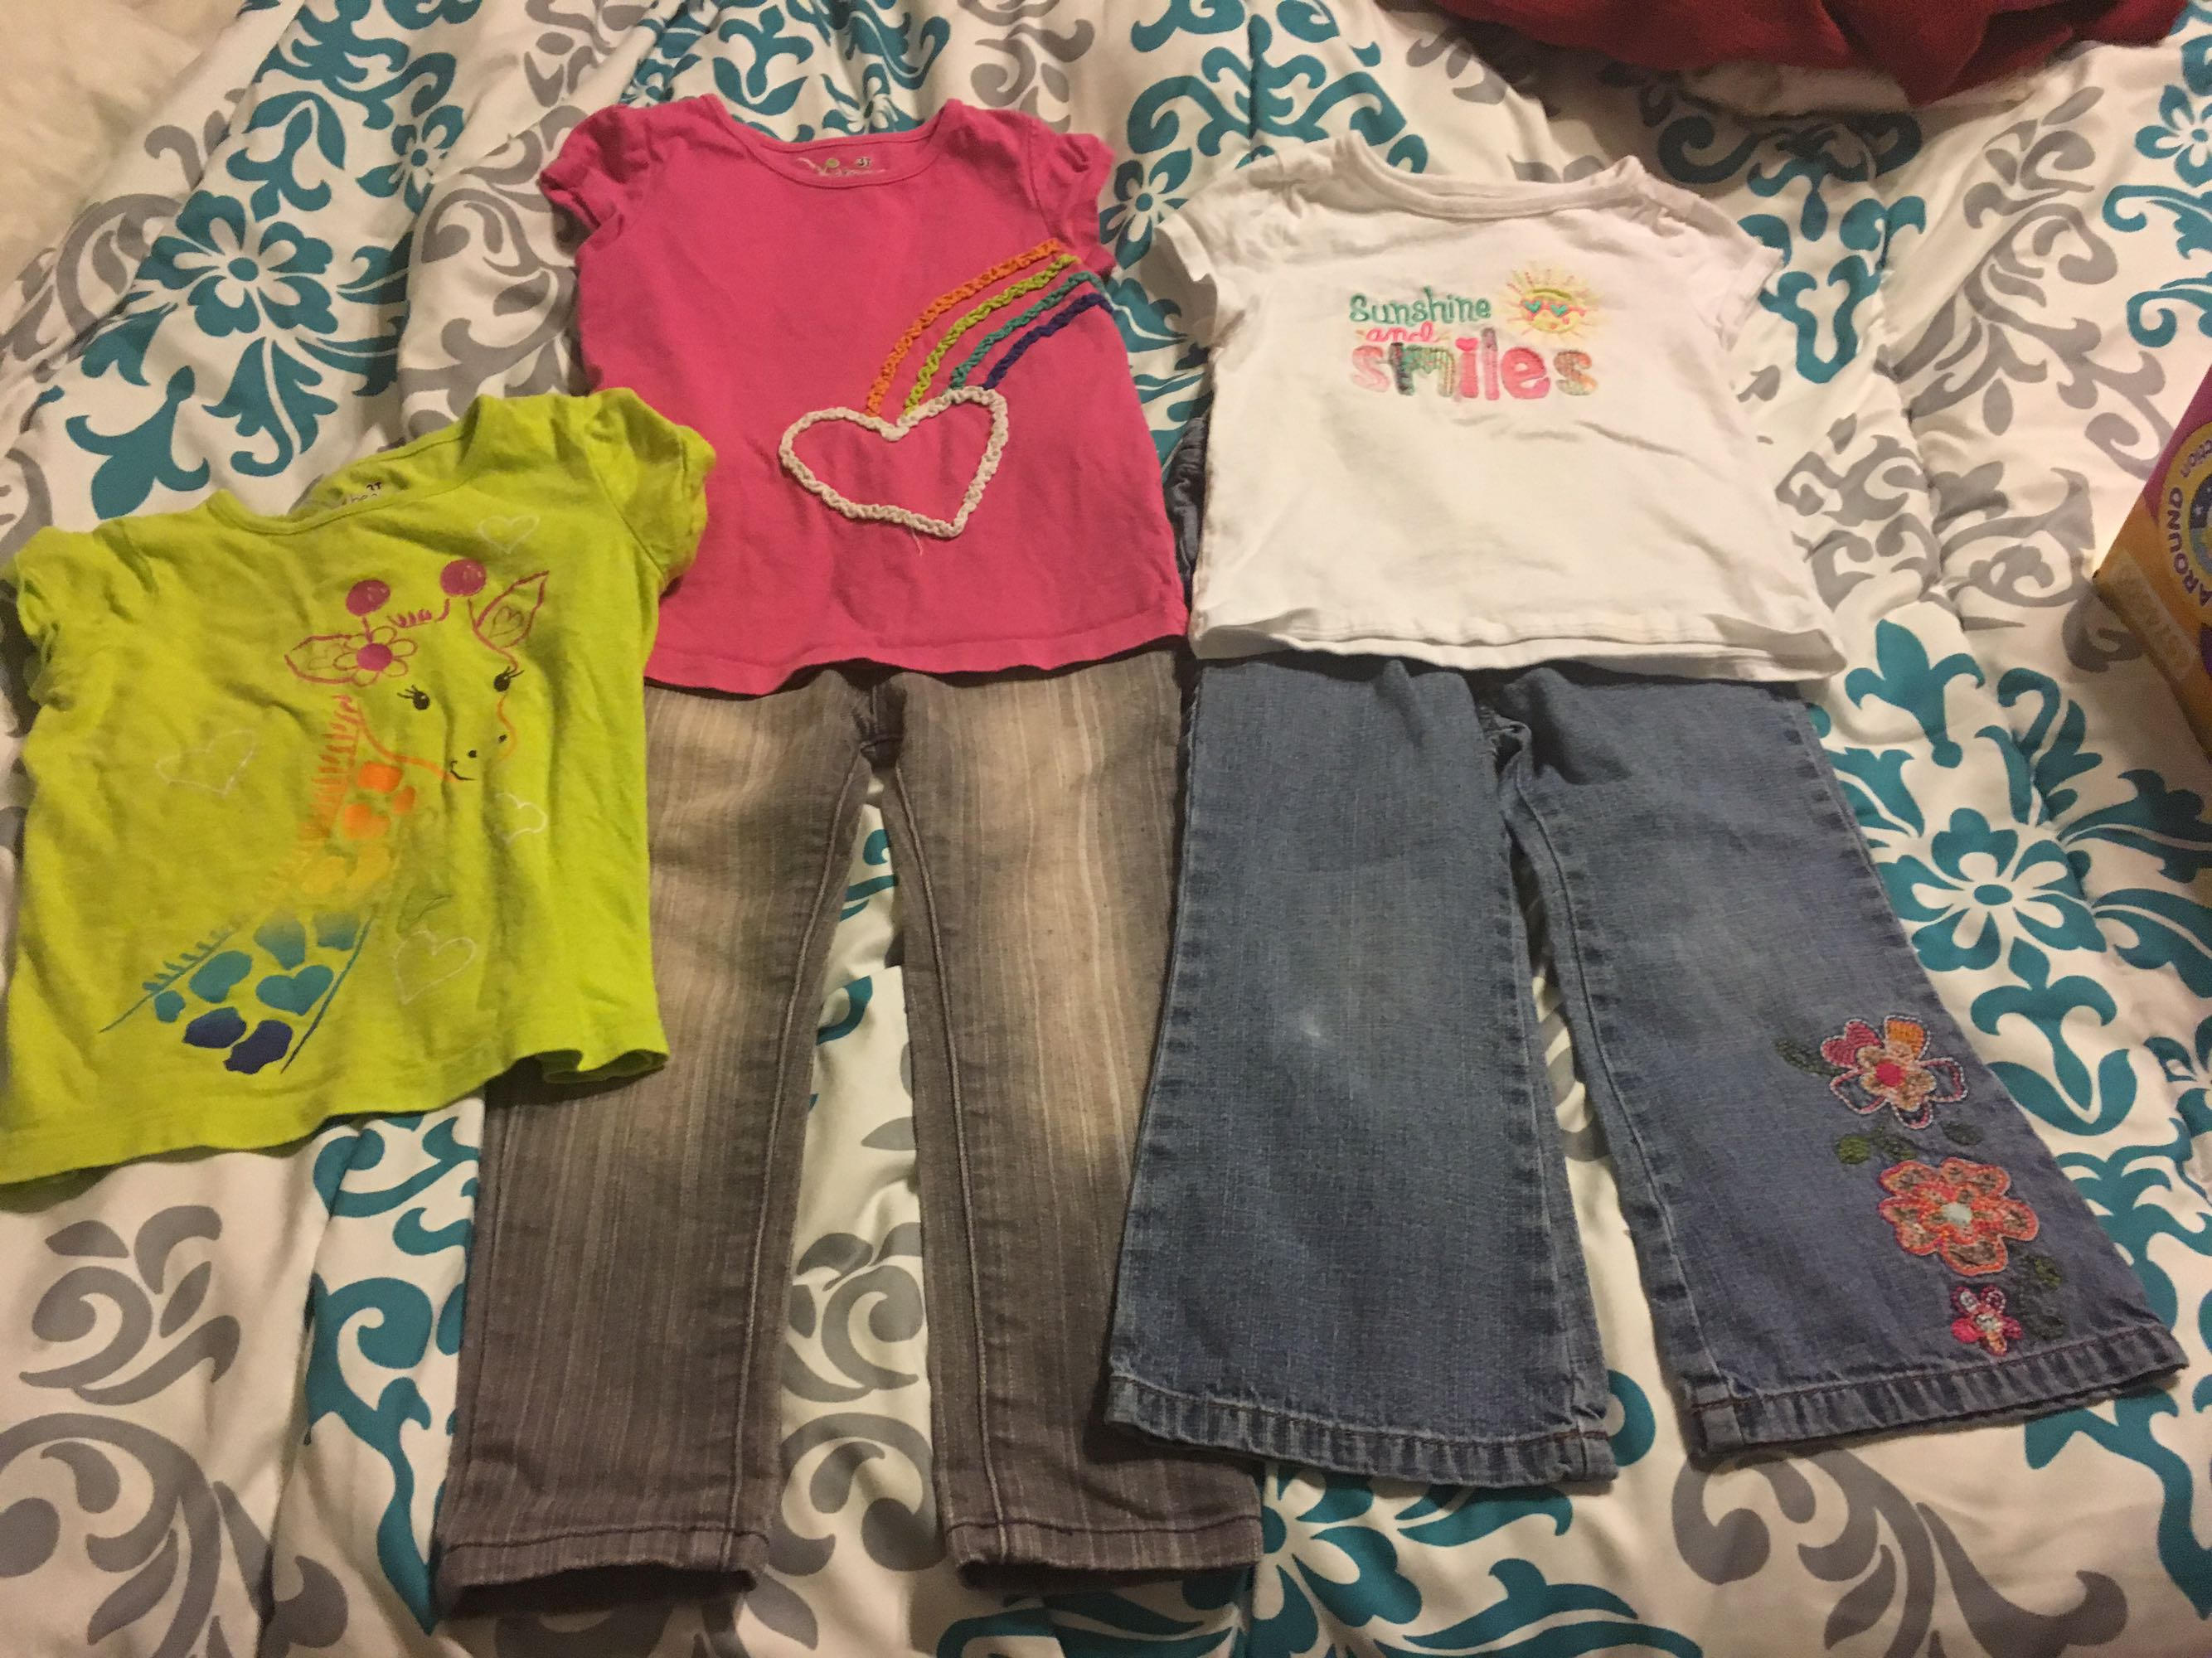 2 pairs of jeans & 3 shirts size 3T